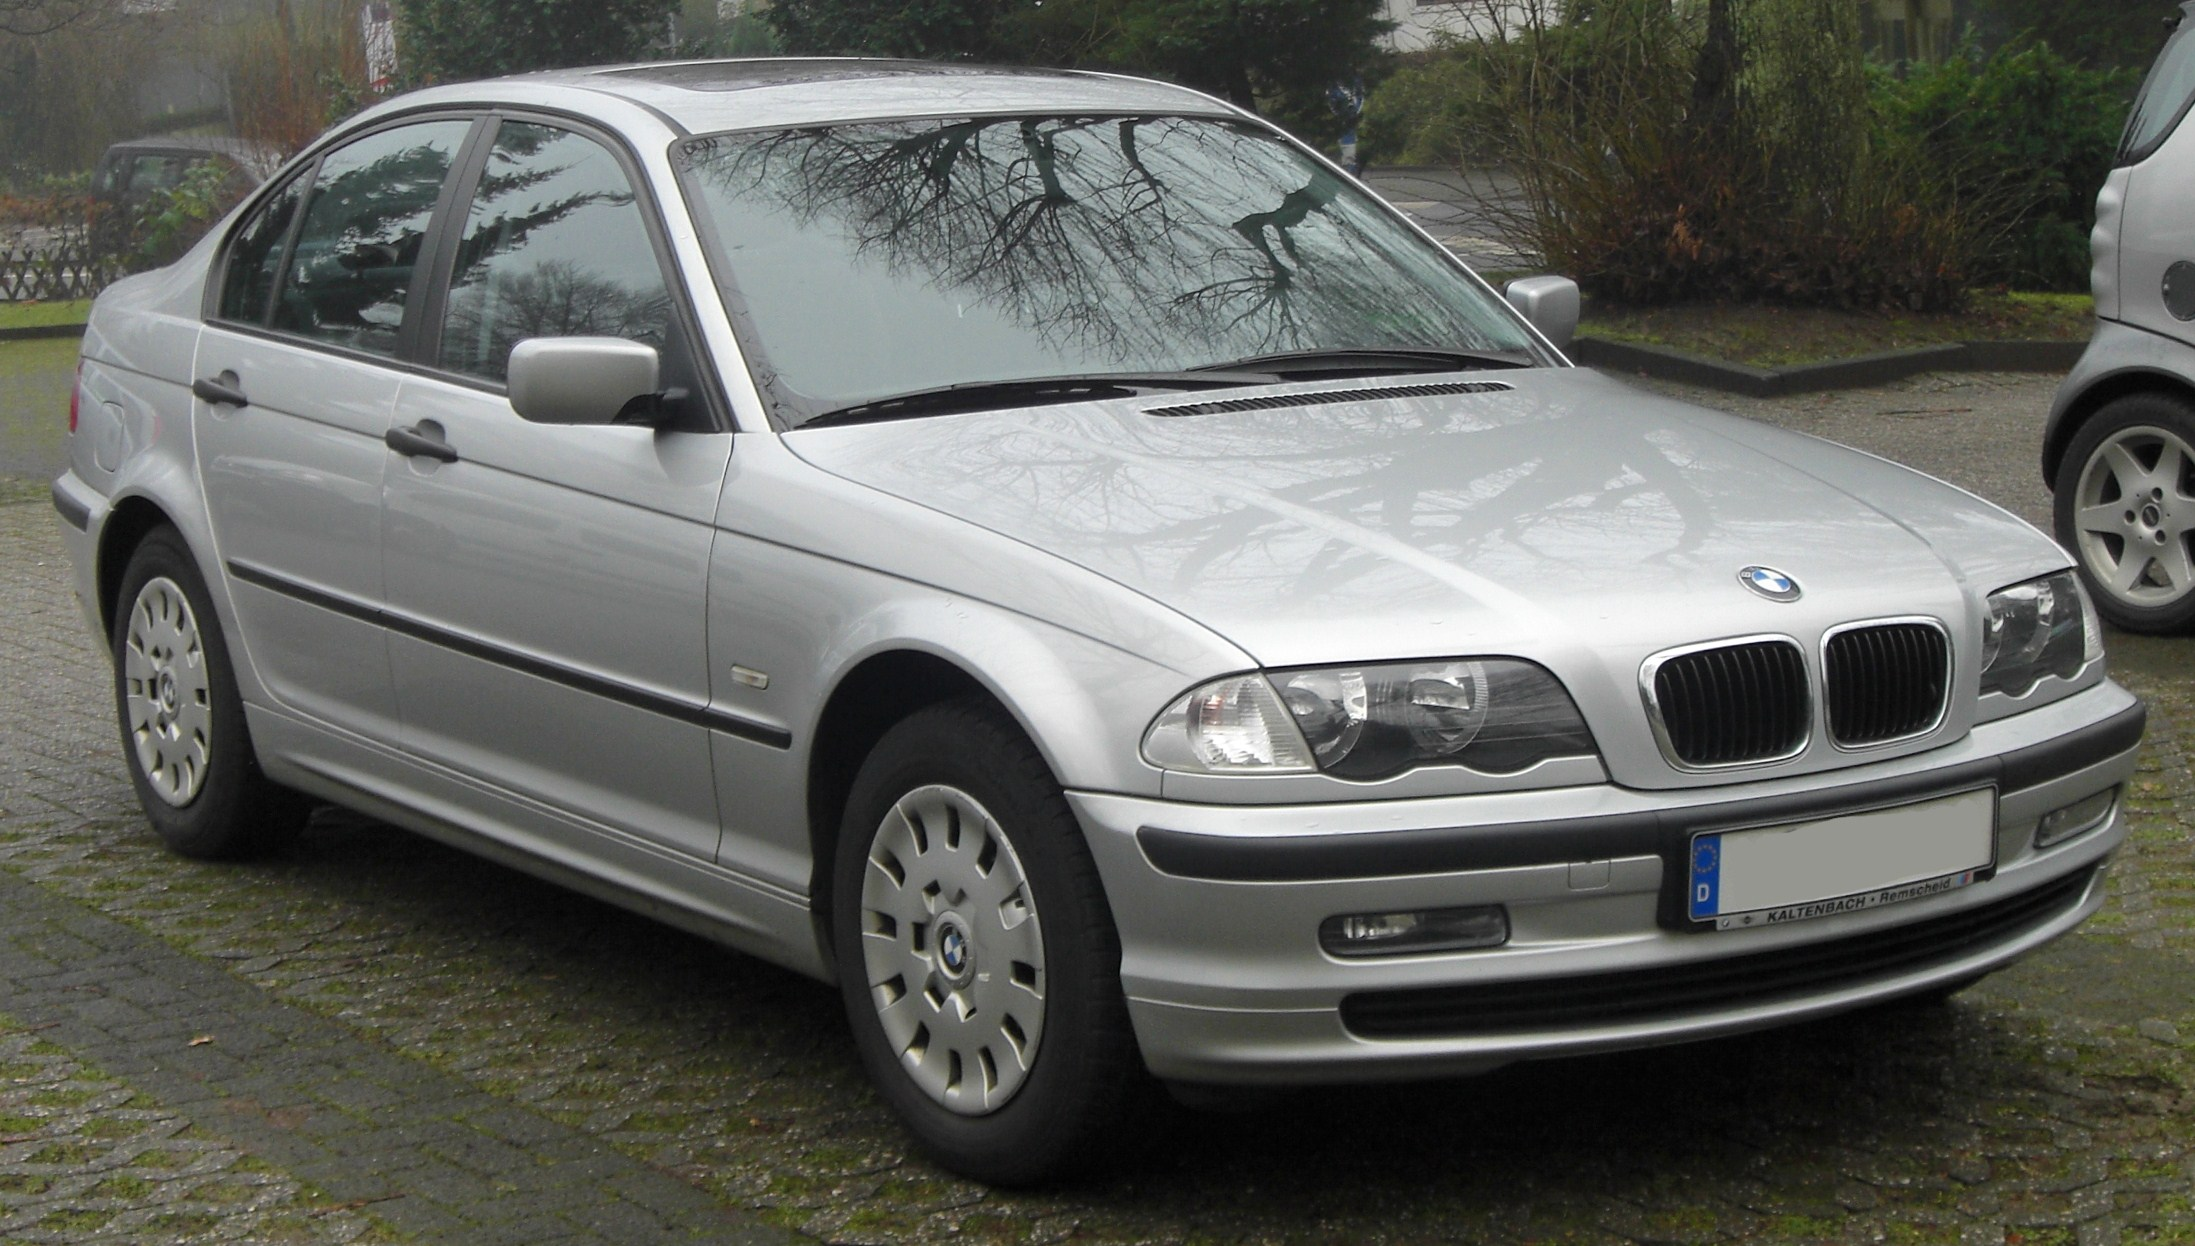 1998 bmw 3 series touring e36 pictures information and specs auto. Black Bedroom Furniture Sets. Home Design Ideas